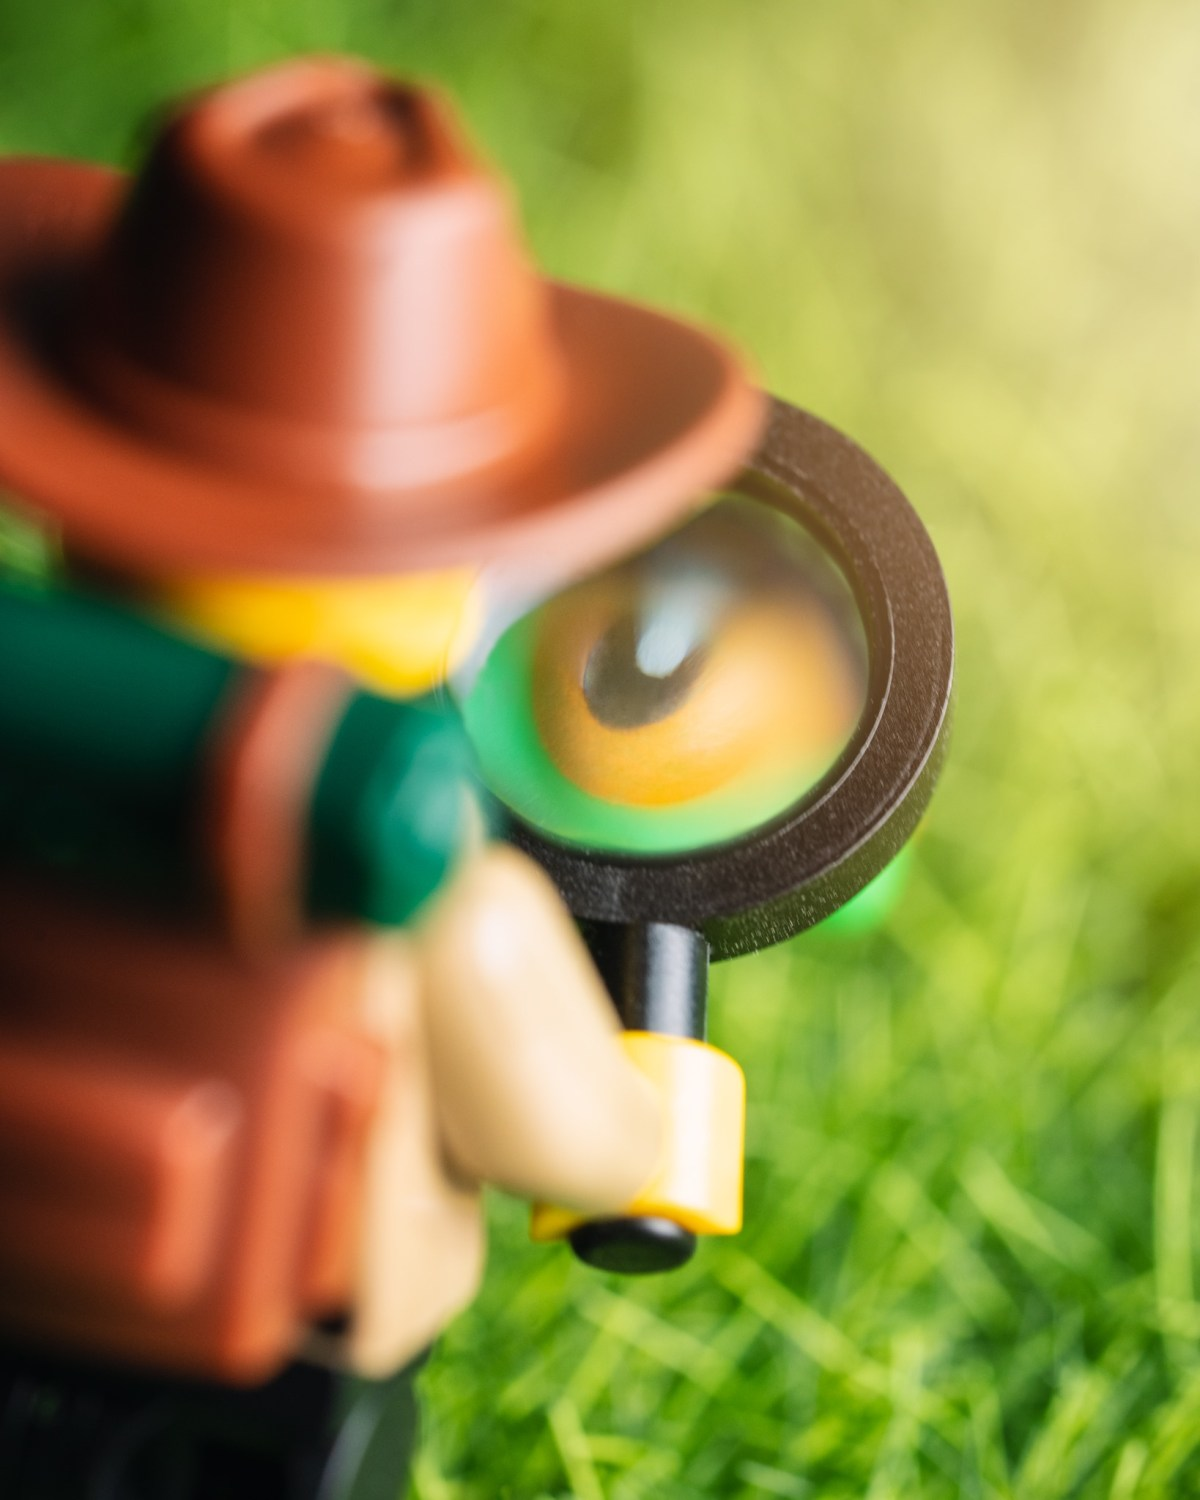 The Lego Explorer